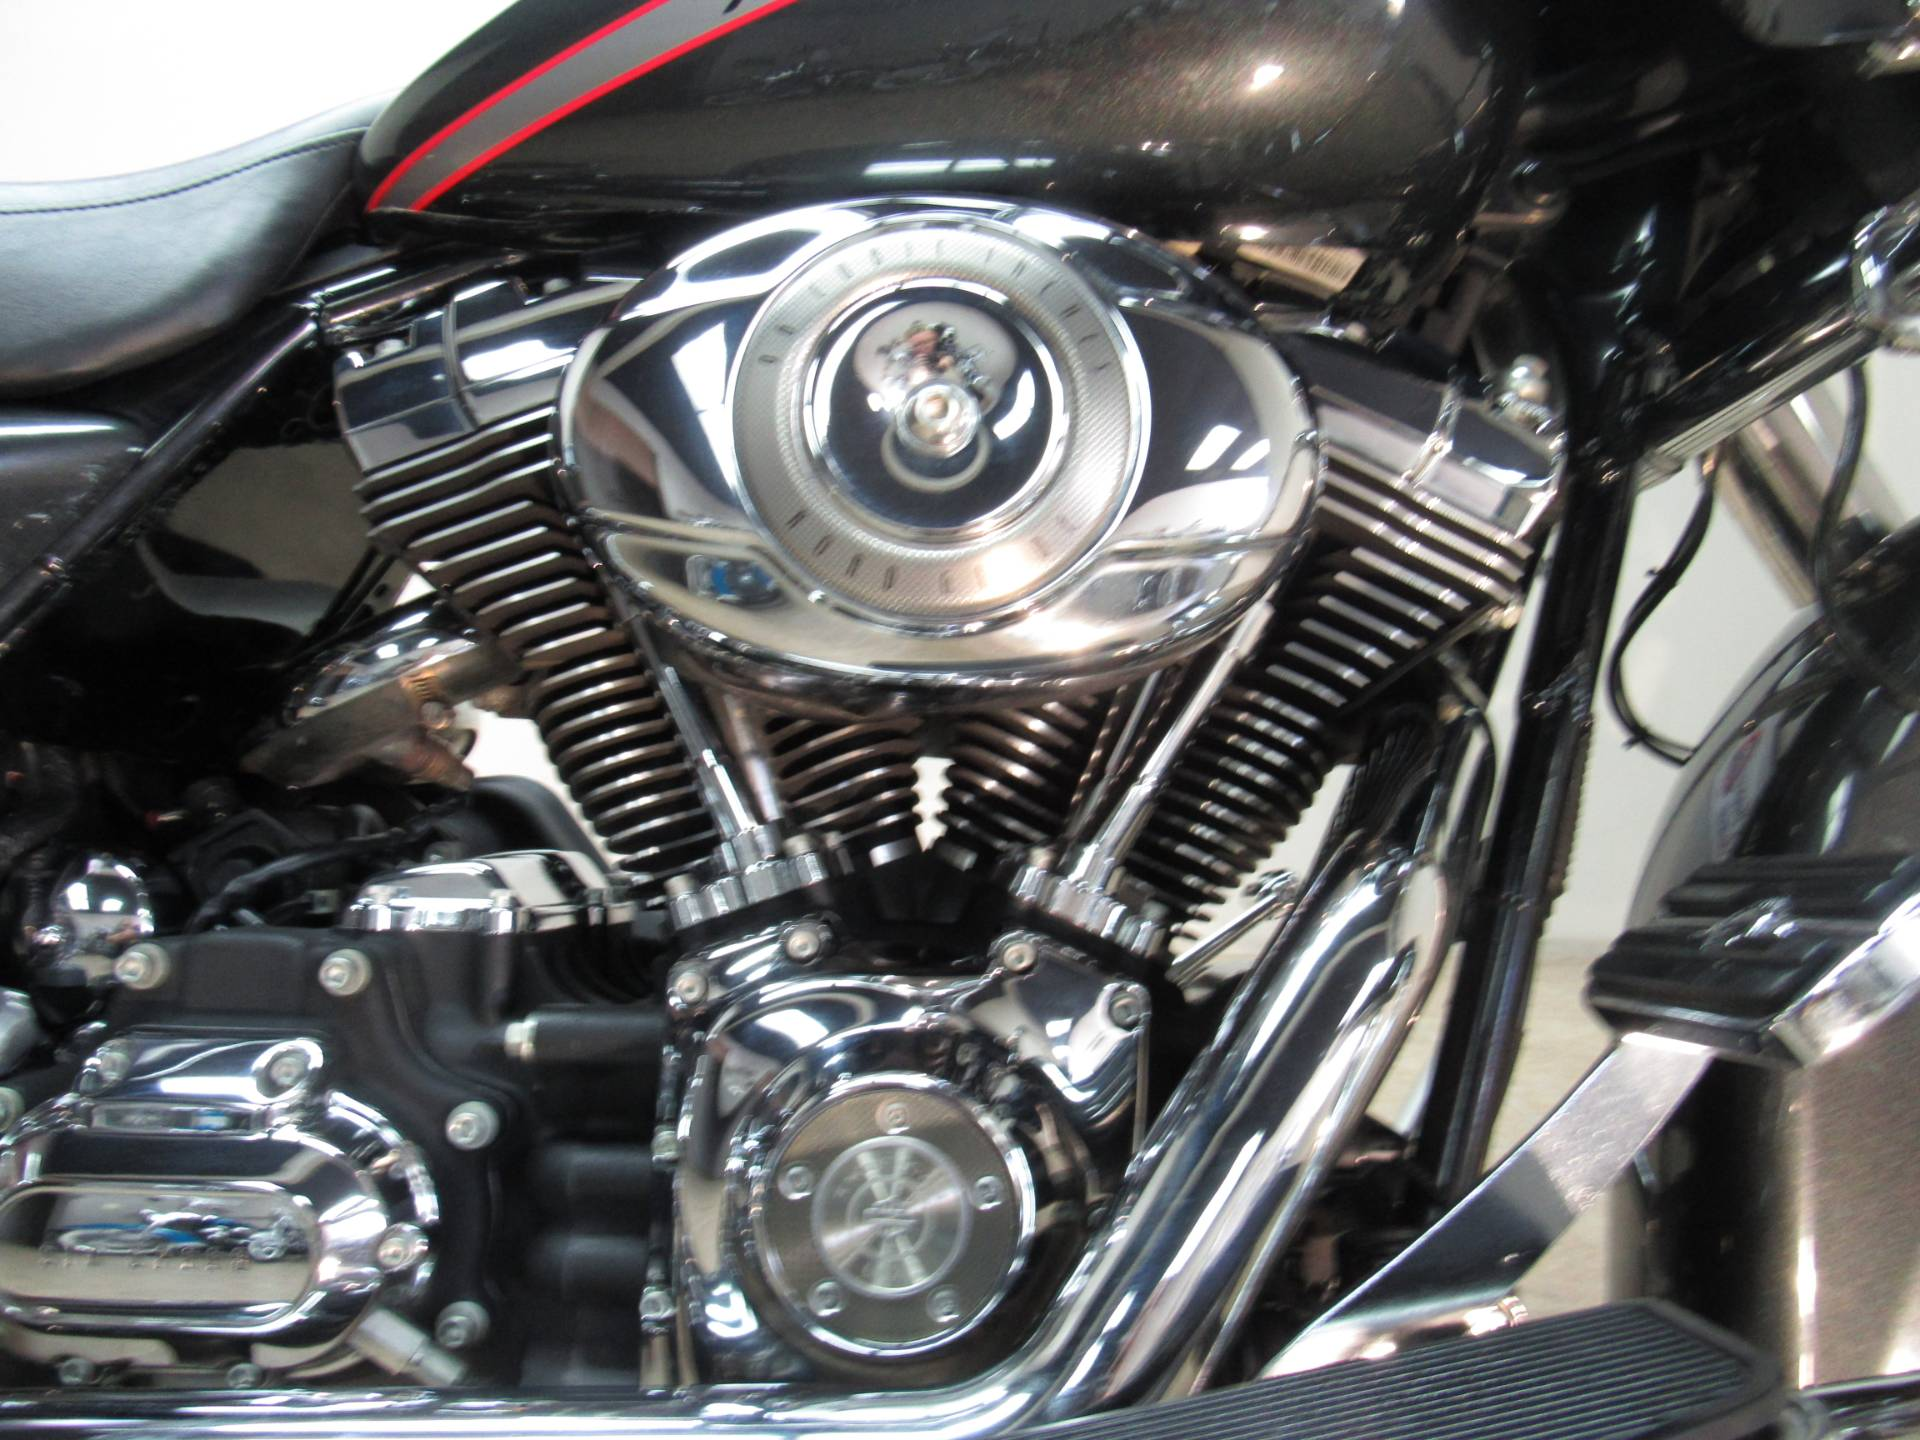 2008 Harley-Davidson Road Glide® in Temecula, California - Photo 13